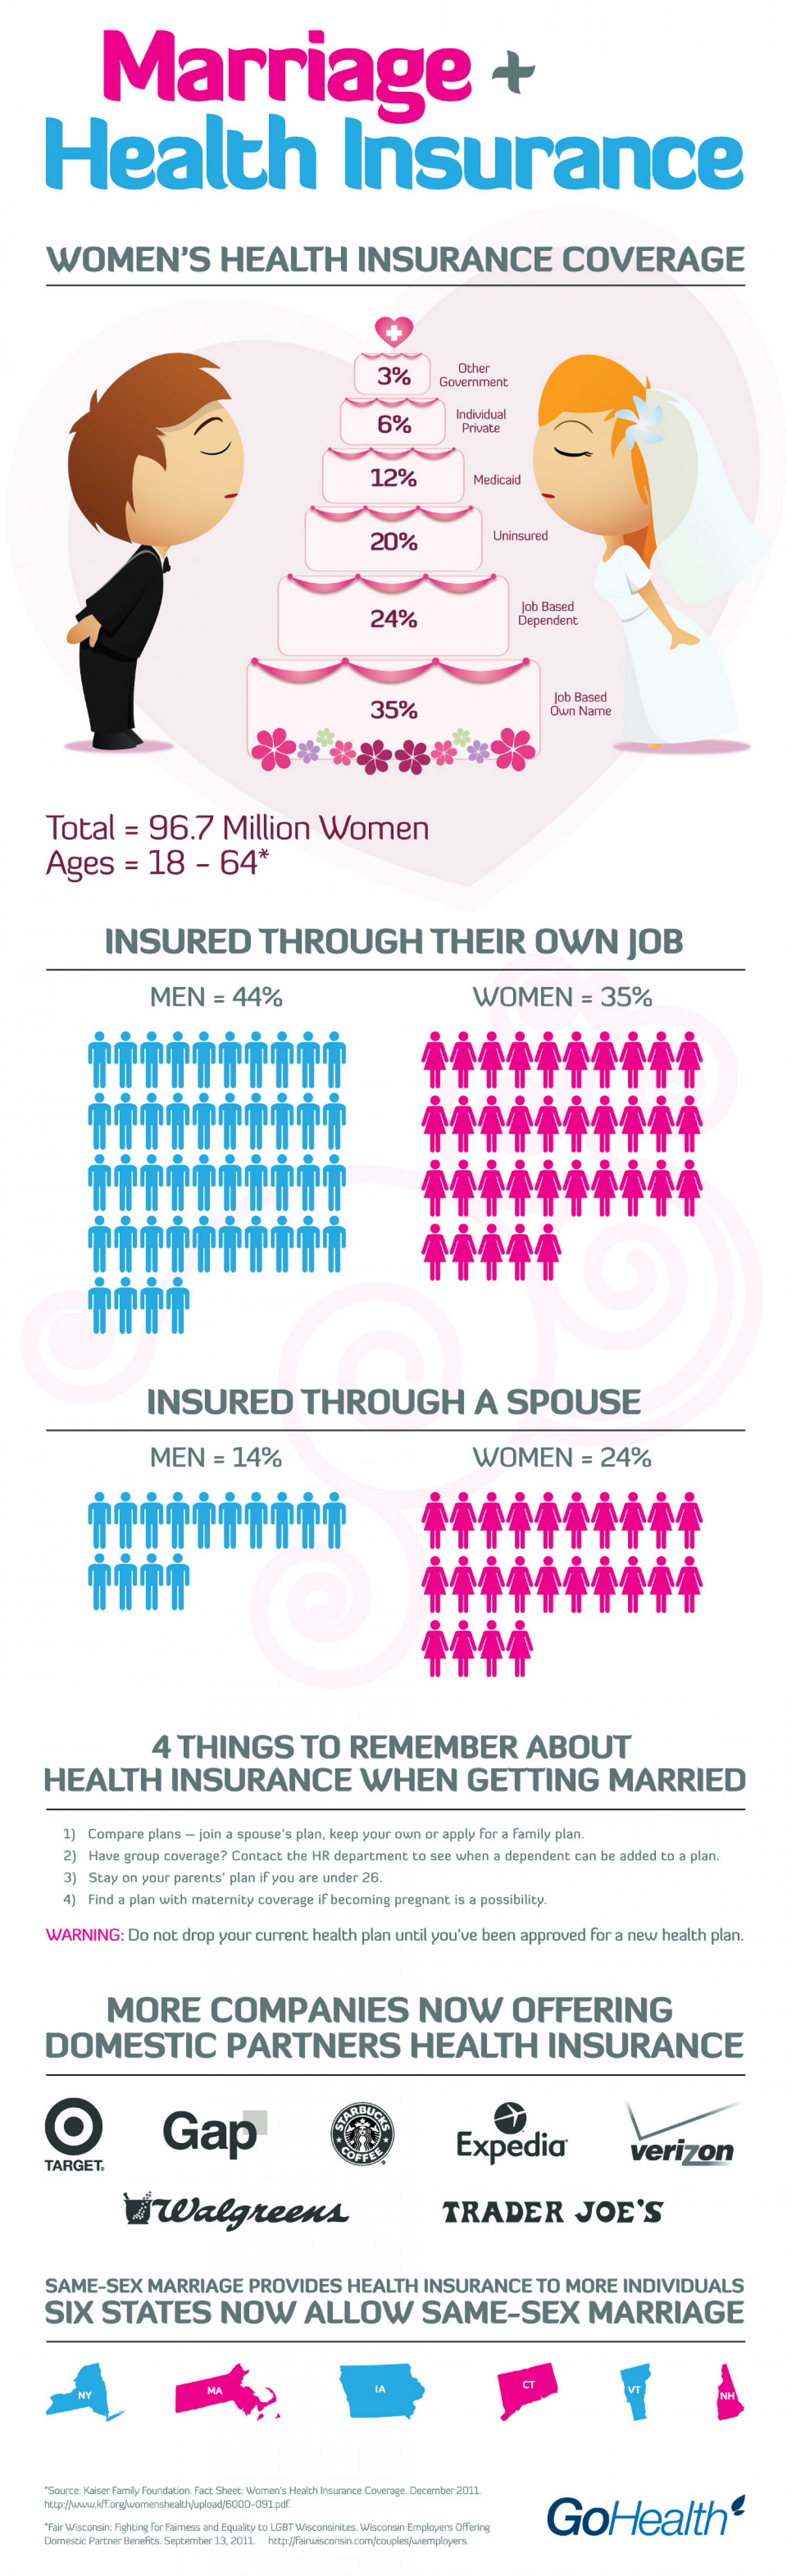 Marriage and Health Insurance Infographic